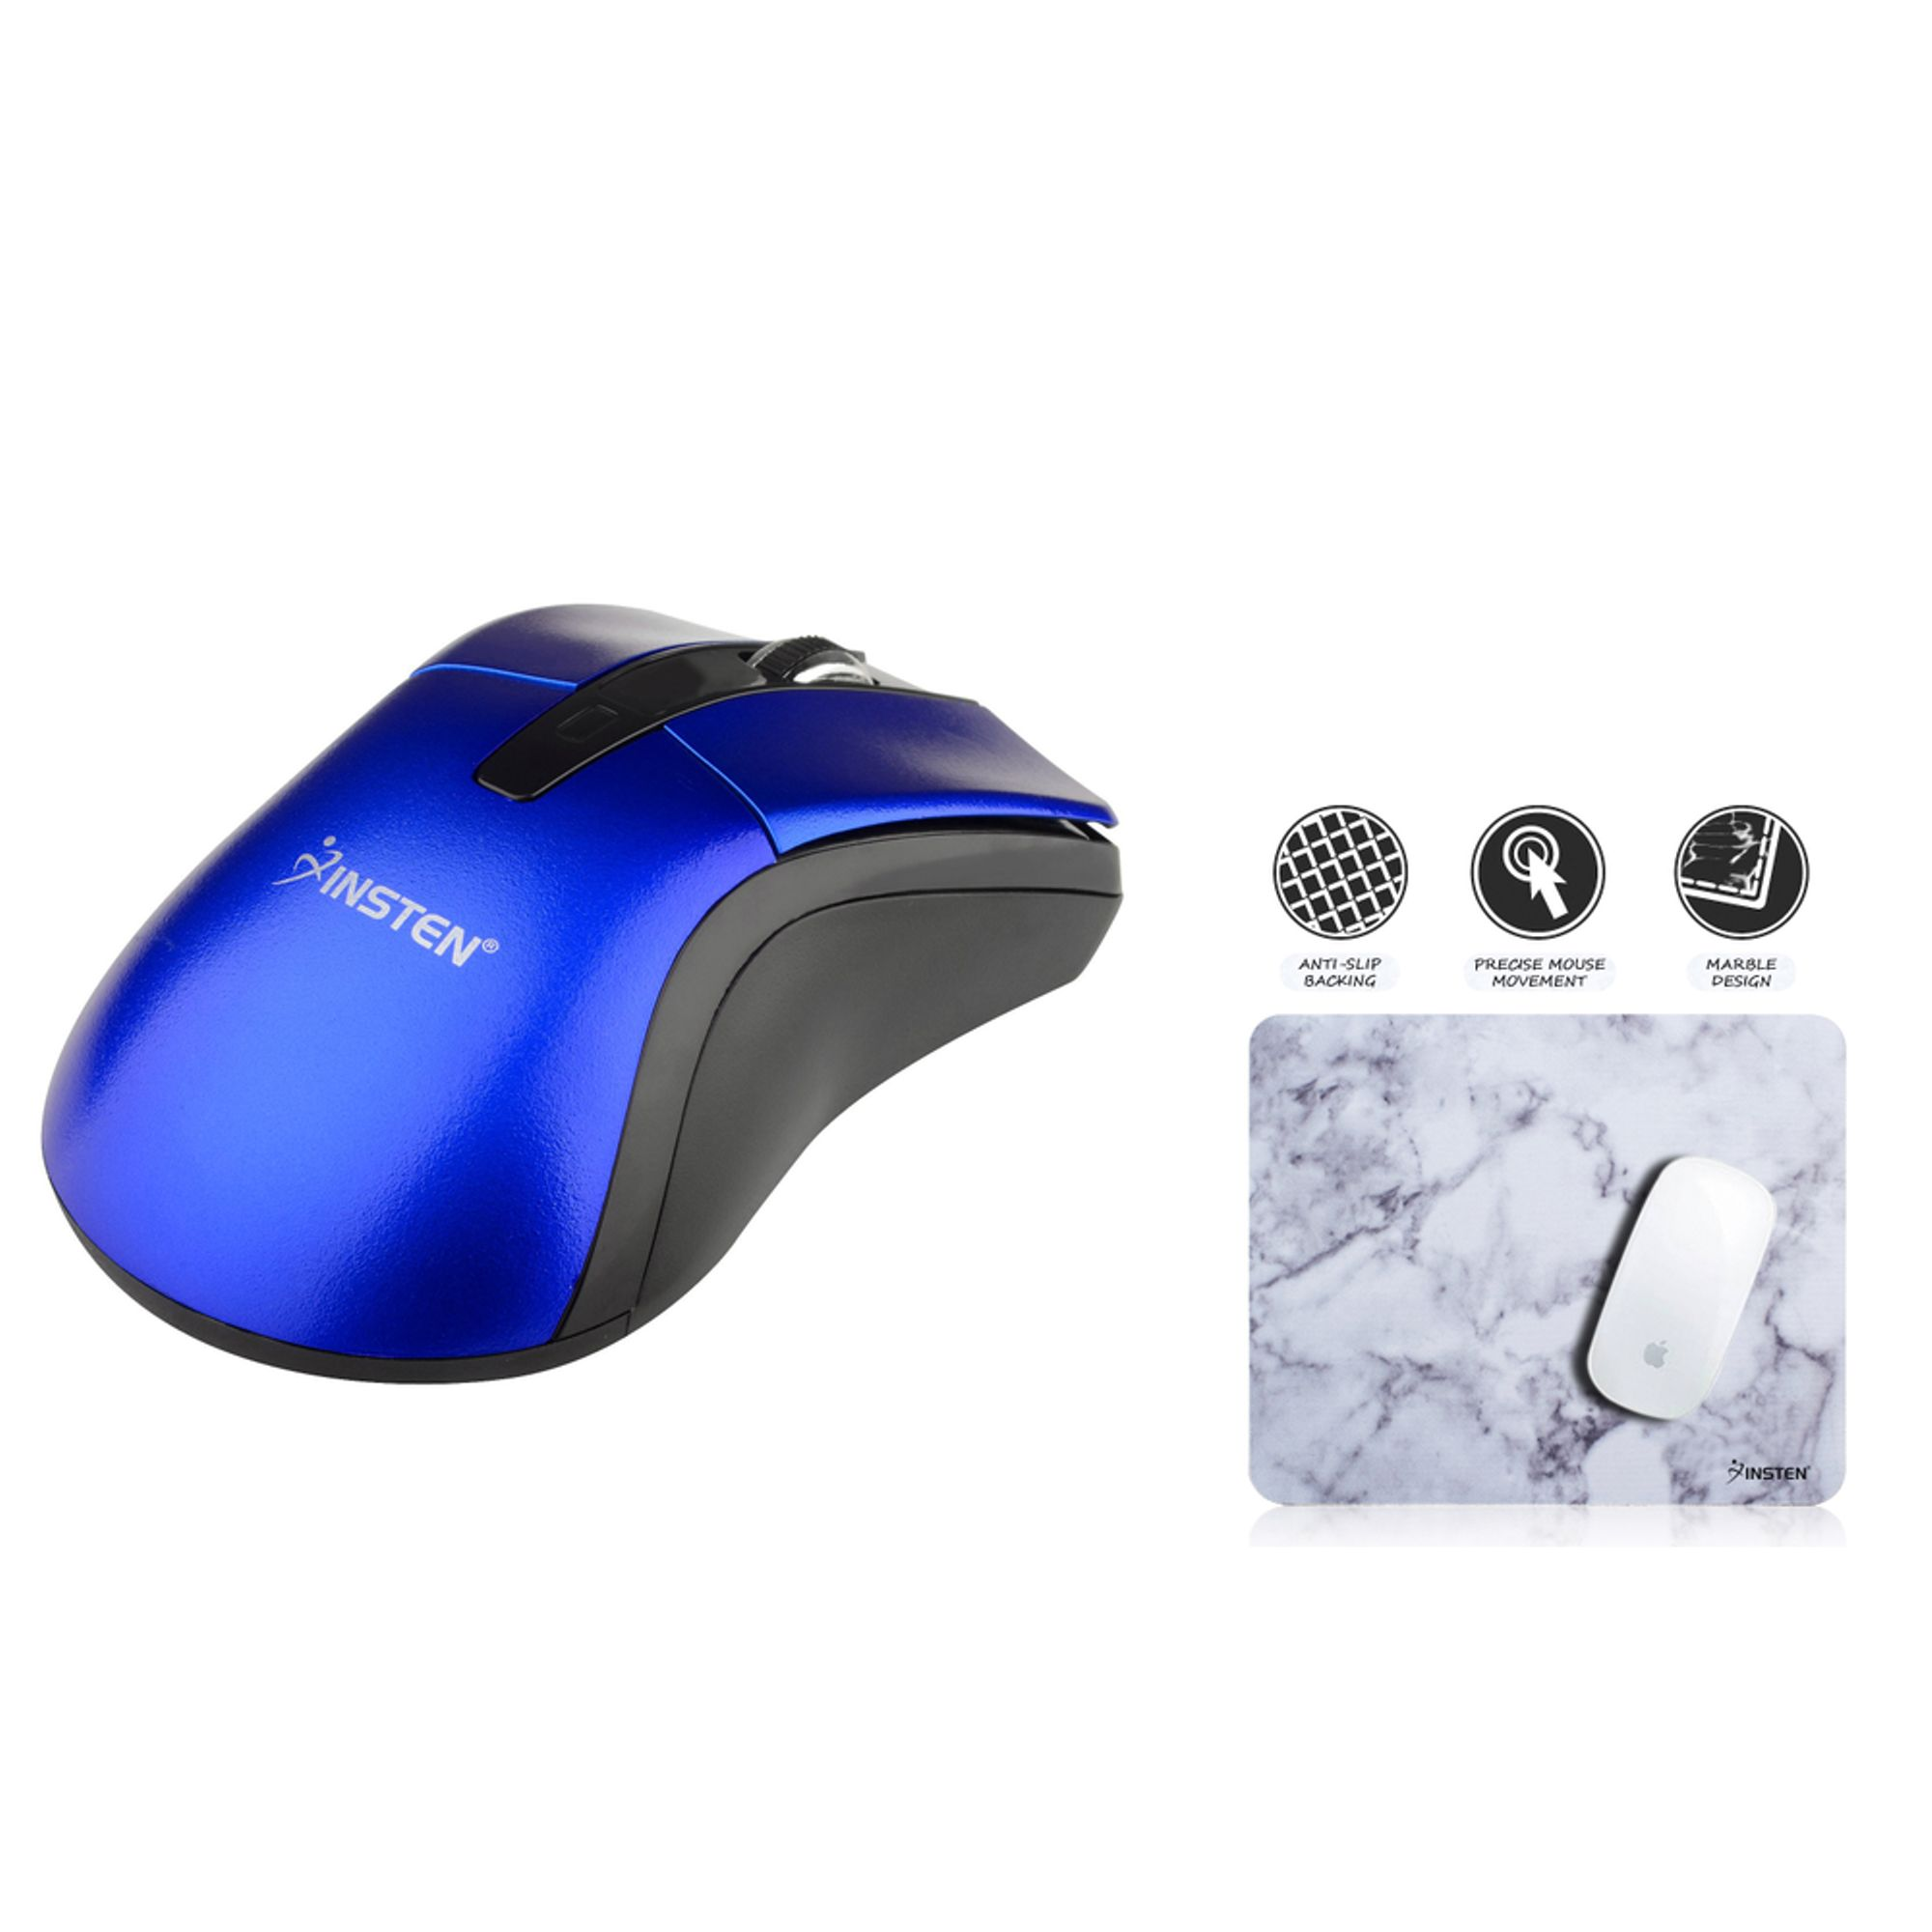 Insten Blue Ver 2 2.4G Cordless Wireless Optical Mouse + White Marble Mouse Pad